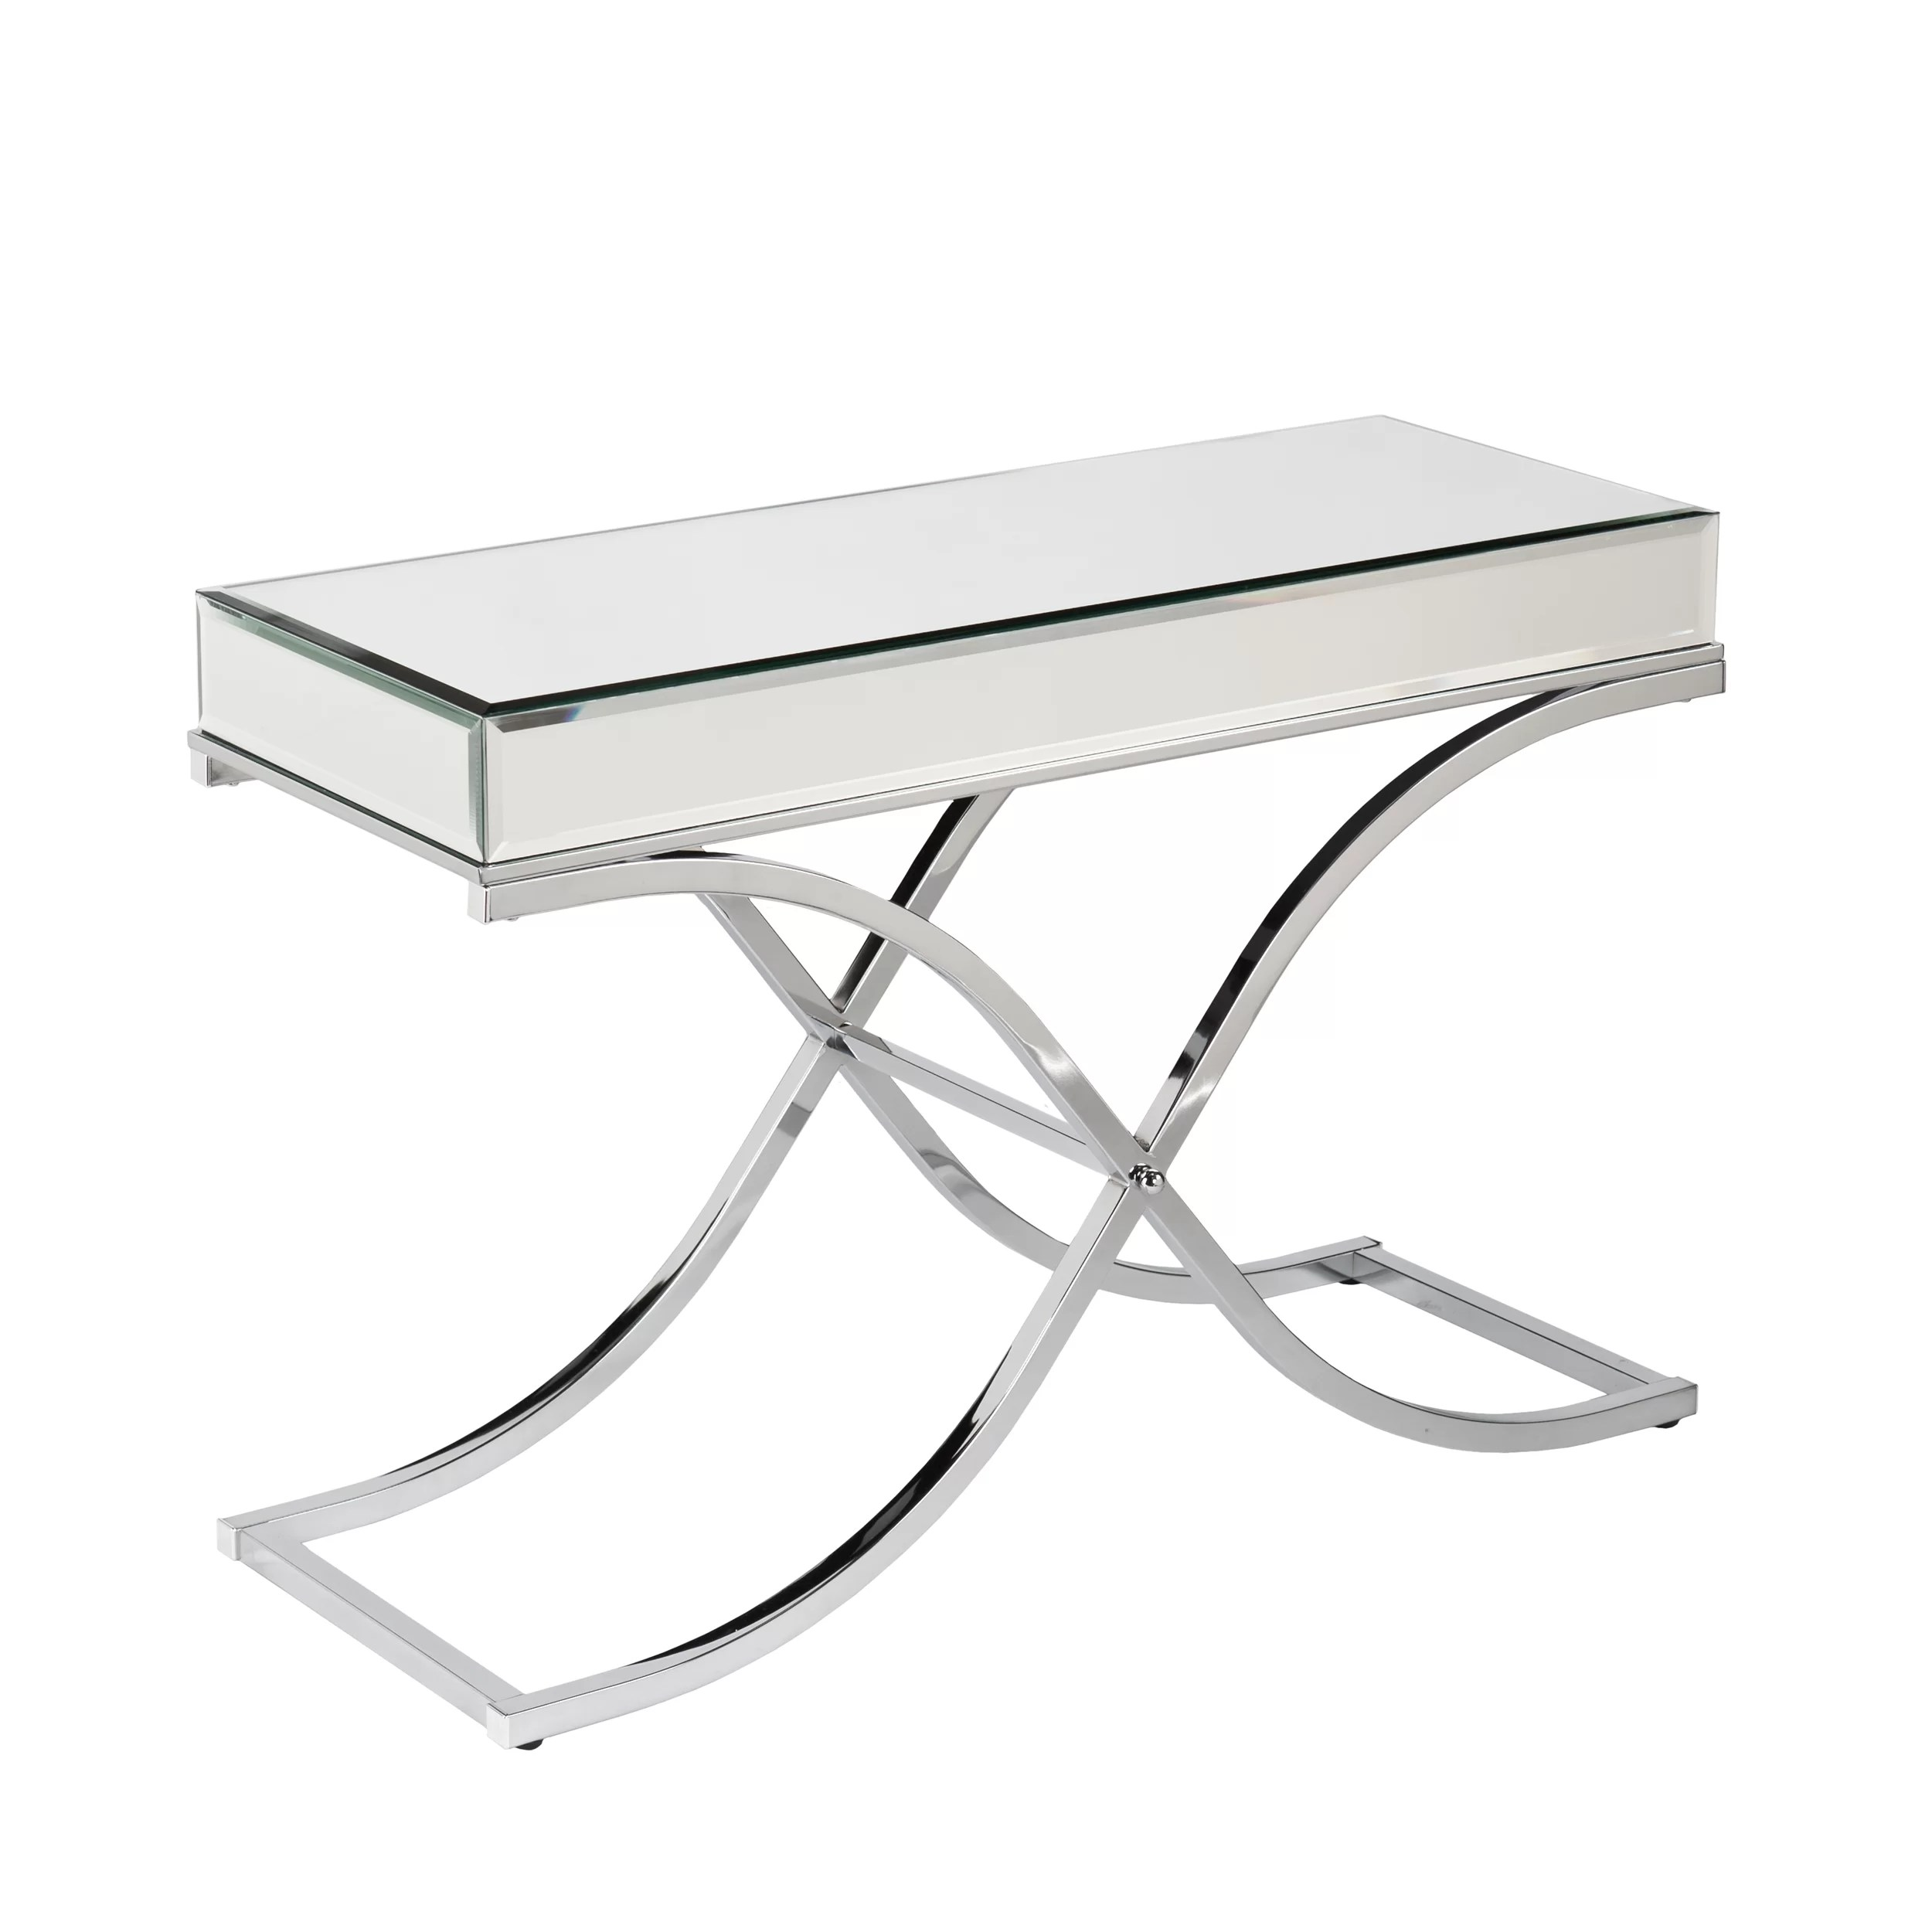 living room console tables mirrored interior design photo gallery 2017 jeannie table reviews joss main